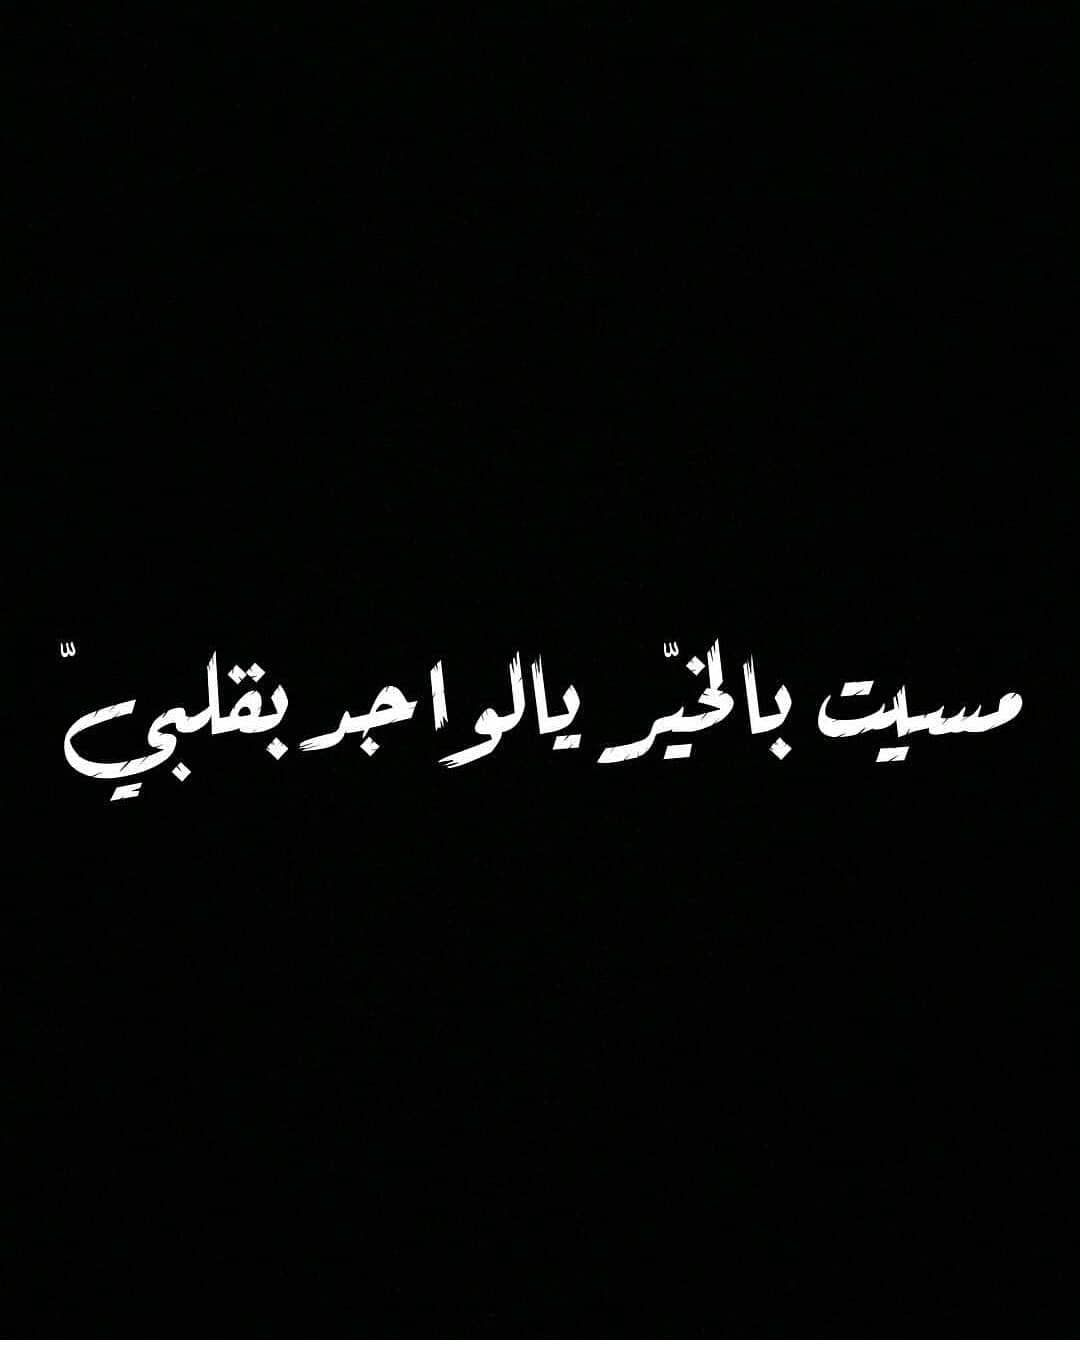 Pin By Ahood On Status Dp ツ Picture Quotes Arabic Quotes Words